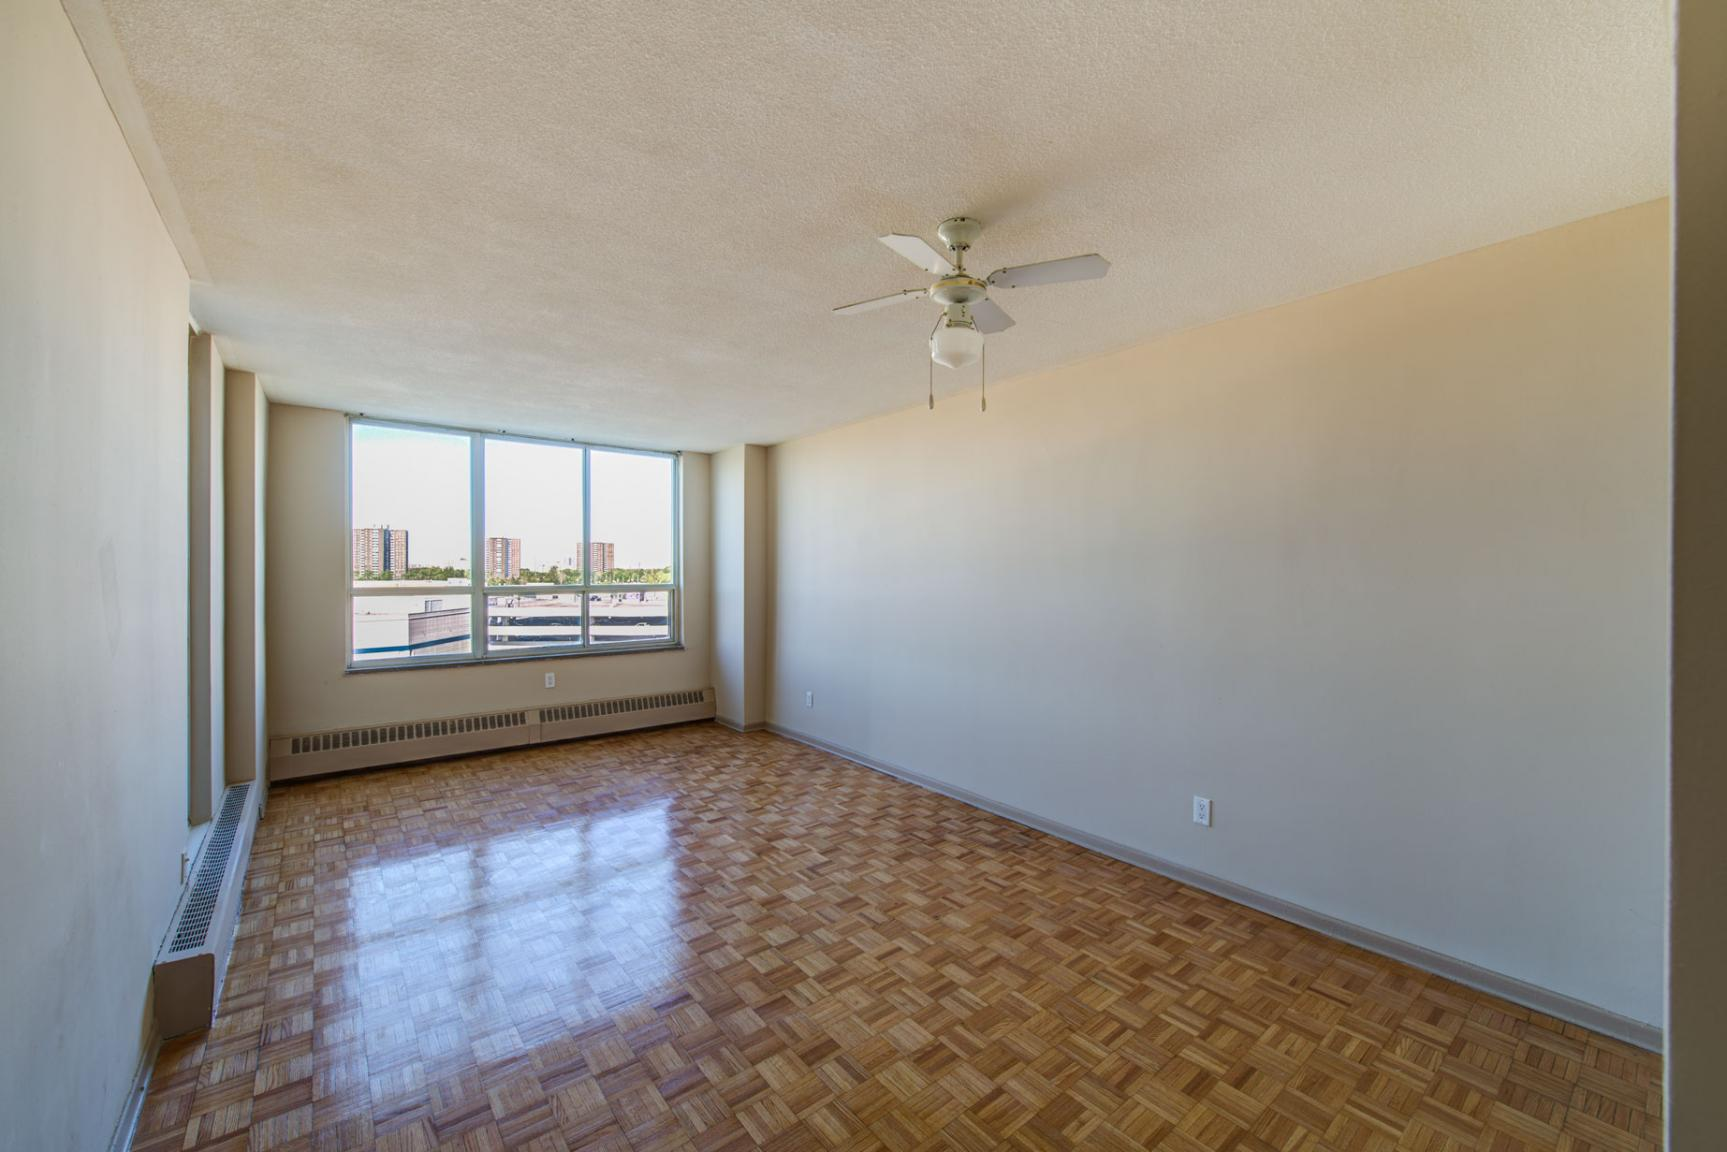 1 bedroom Apartments for rent in North-York at Hunters Lodge - Photo 32 - RentersPages – L400651